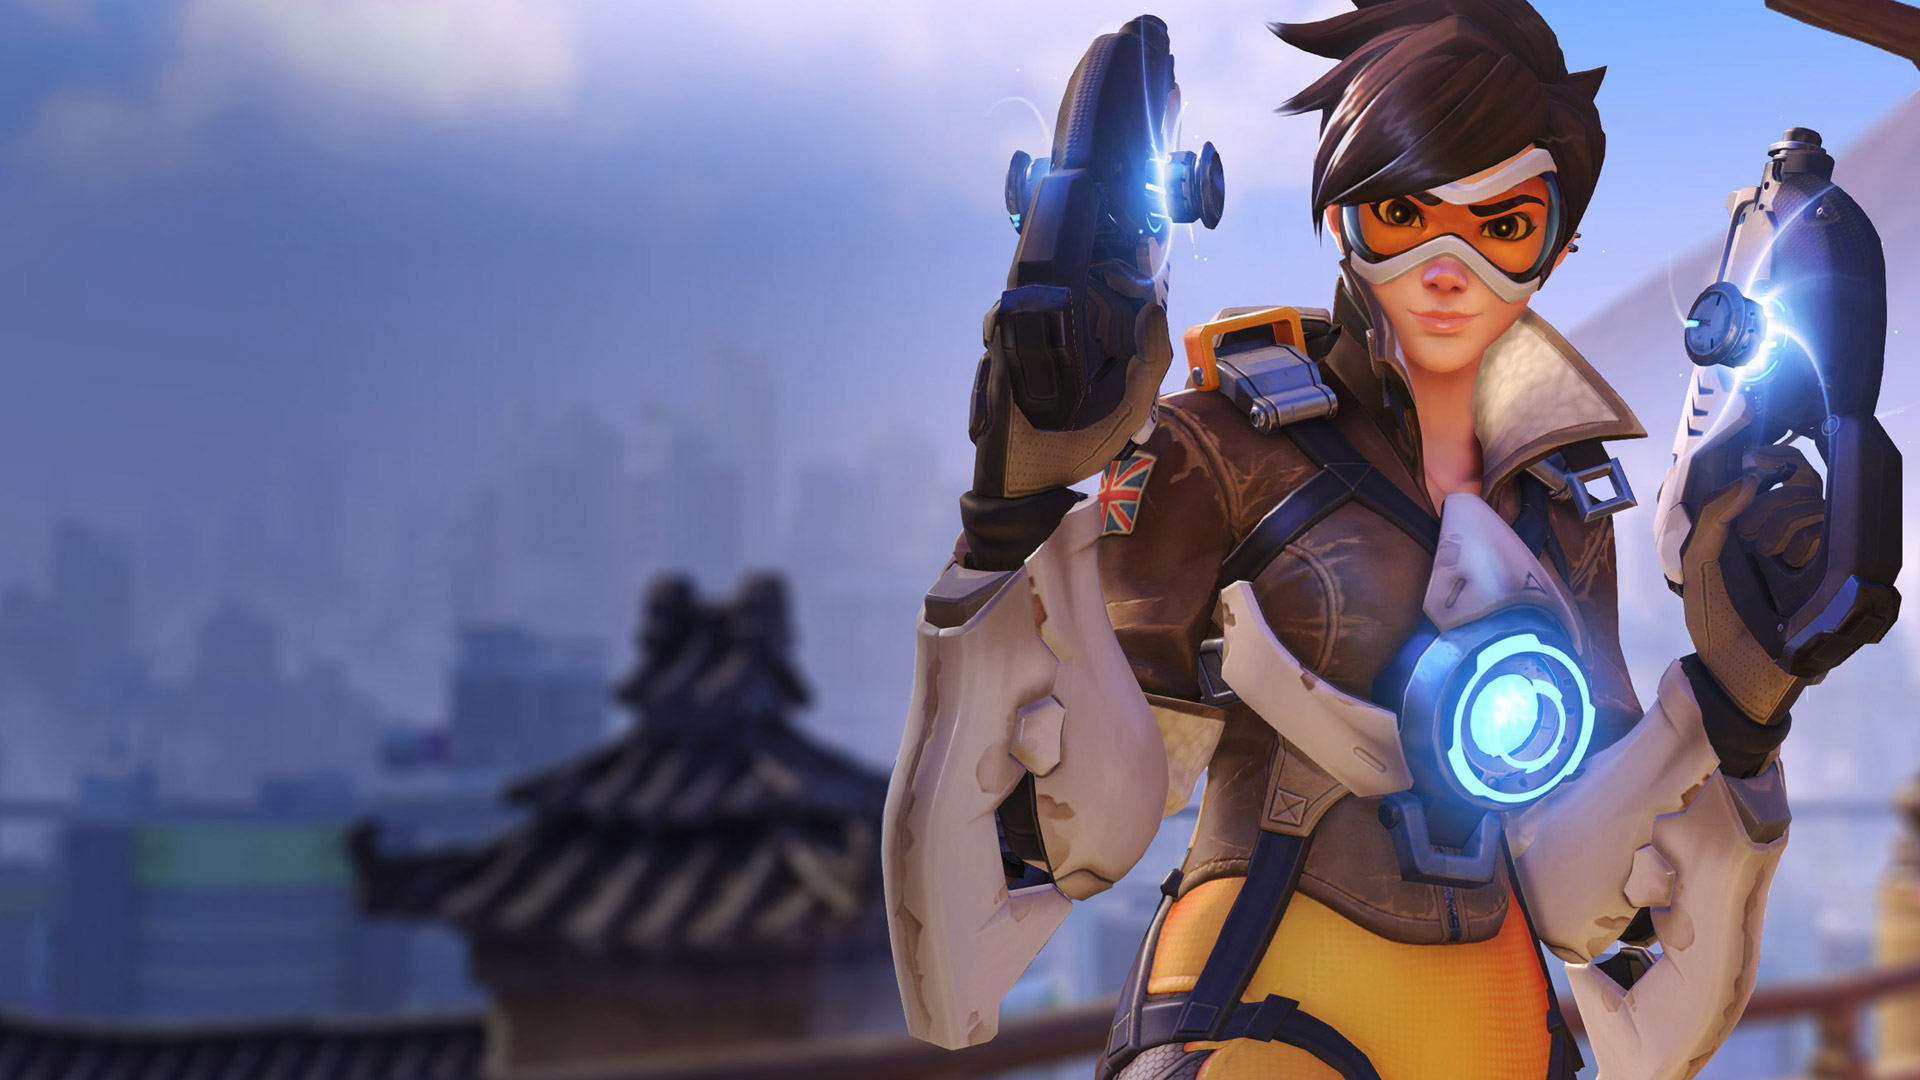 overwatch beta 9,7 millions downloads - devgam.com